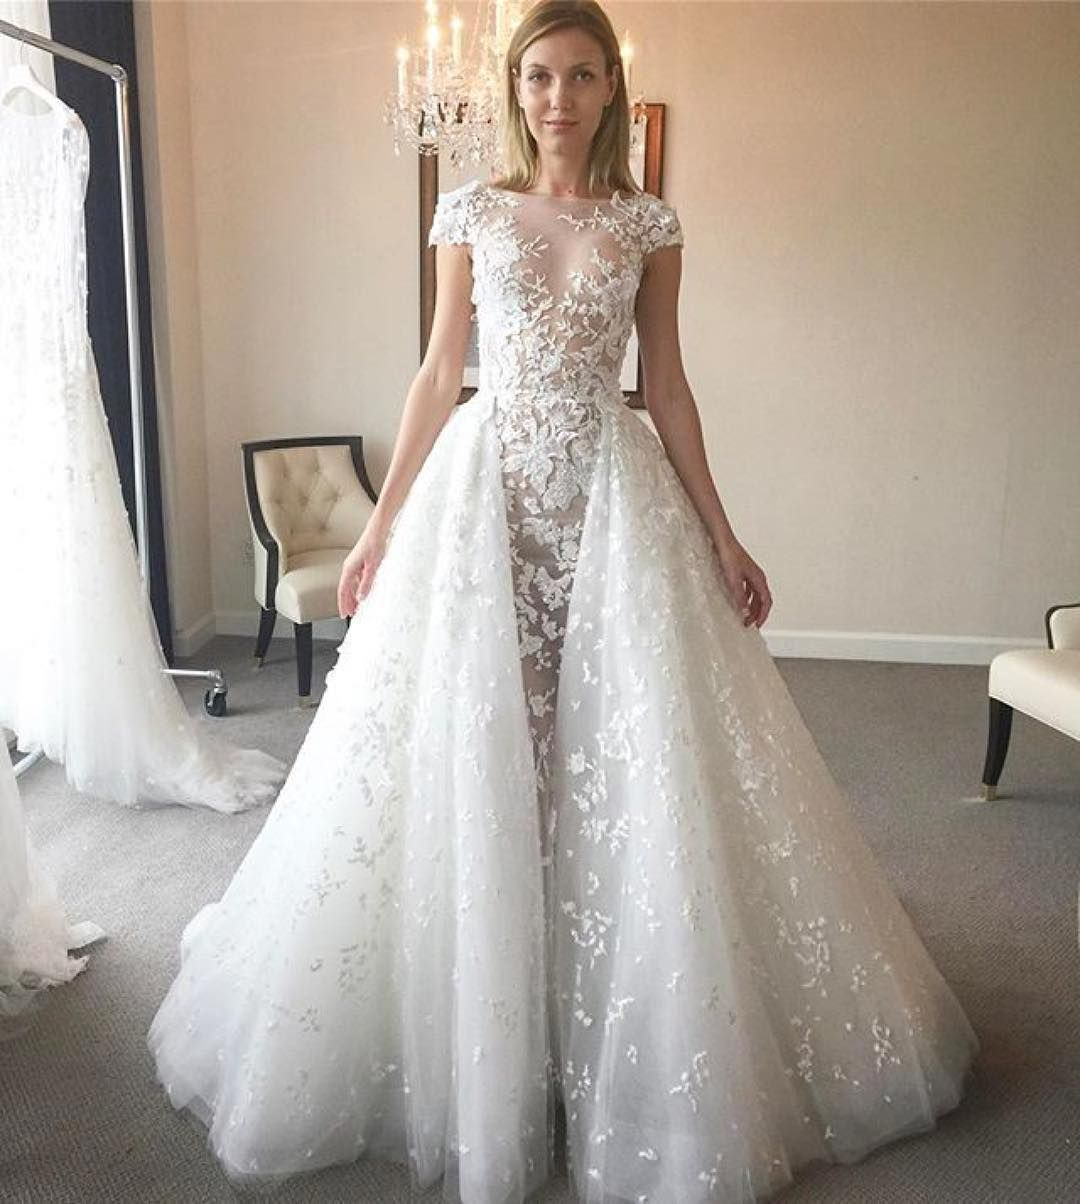 Belleandtulle New Arrival Style Vanna Illusion Cap Sleeves Tulle Ballgow Wedding Dresses Zuhair Murad Backless Mermaid Wedding Dresses Lace Bridal Gown [ 1204 x 1080 Pixel ]